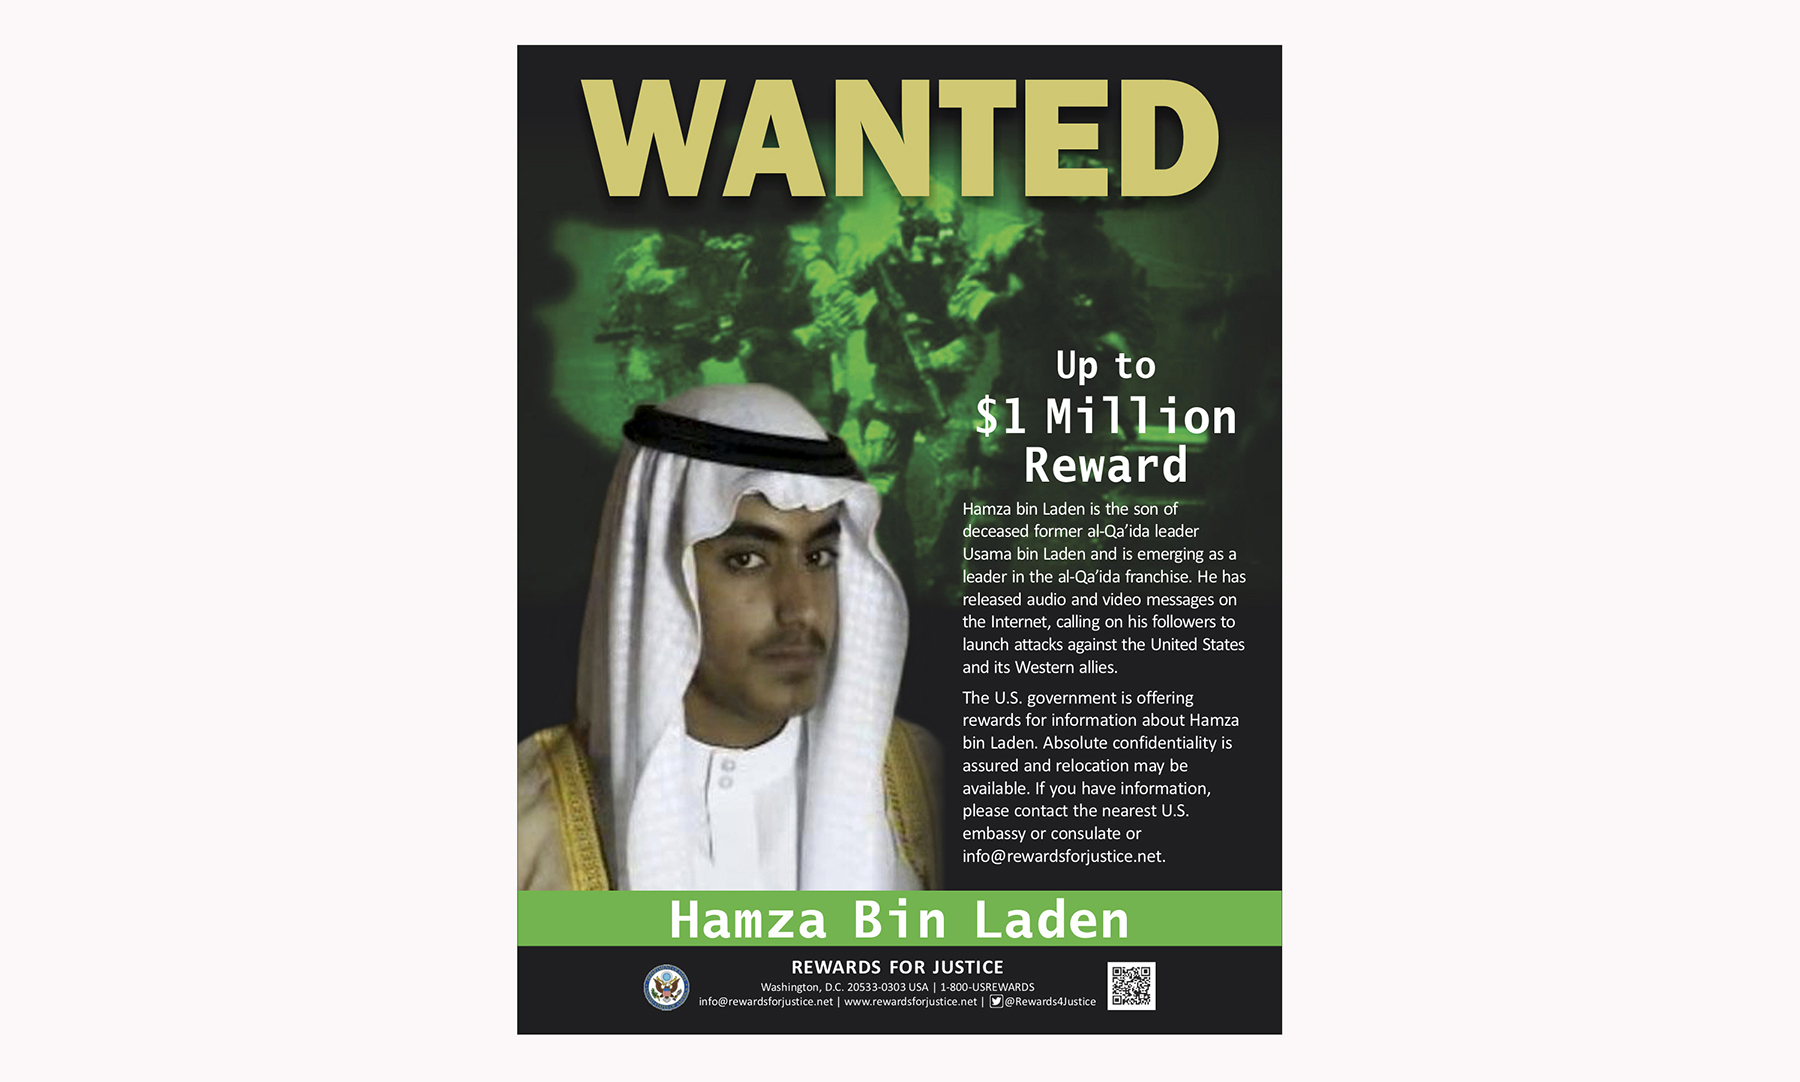 This wanted poster released by the U.S. Department of State Rewards for Justice program shows Hamza bin Laden. (U.S. Department of State Rewards for Justice via AP, File)